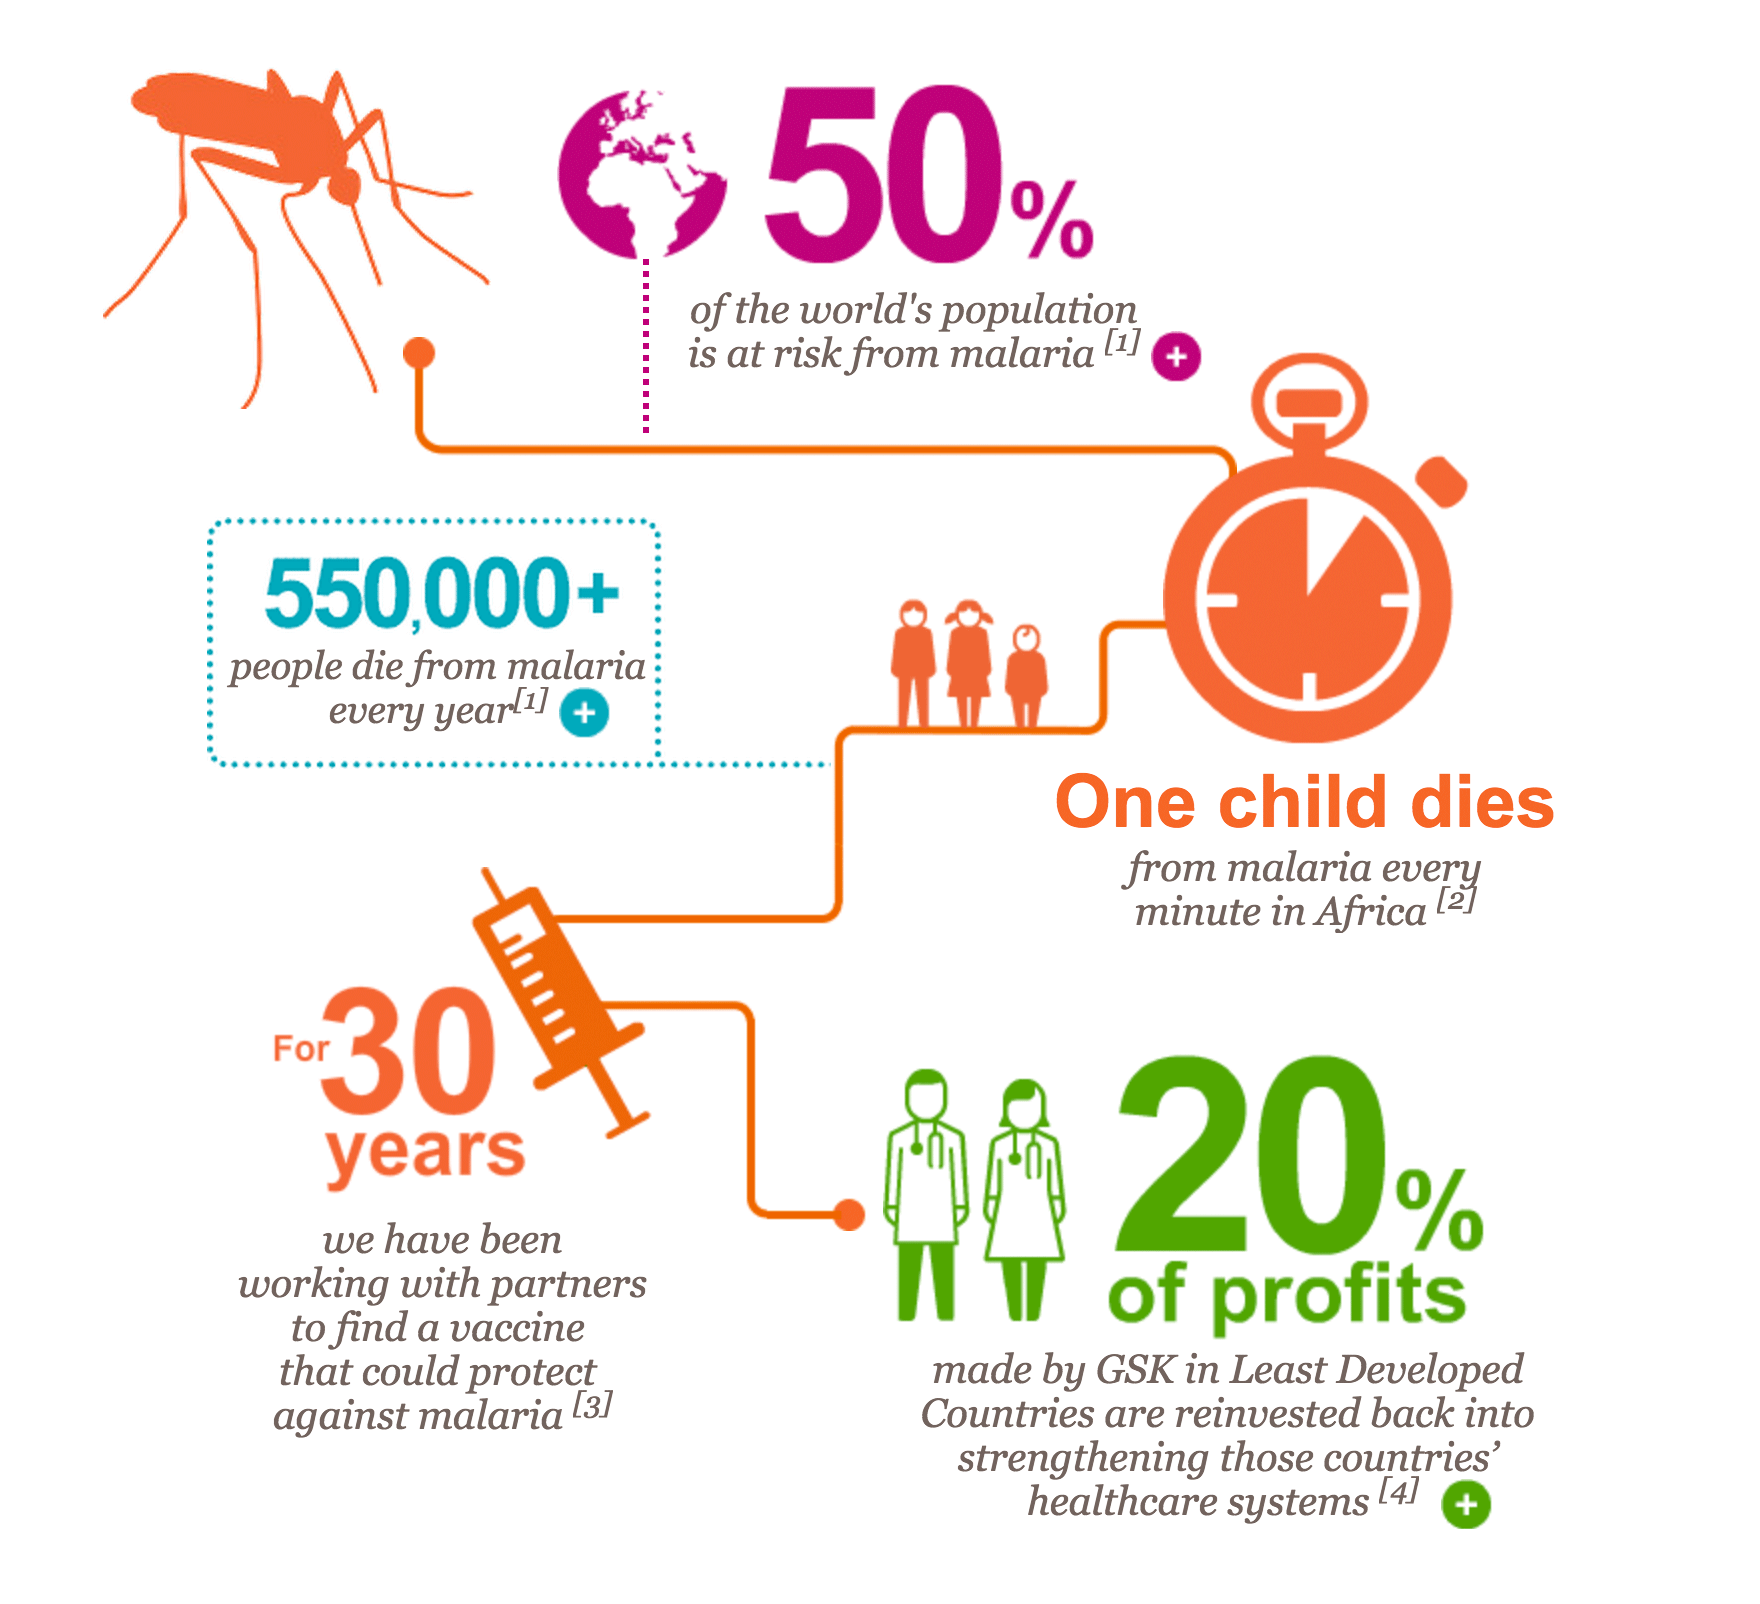 The impact of malaria and what GSK is doing about it